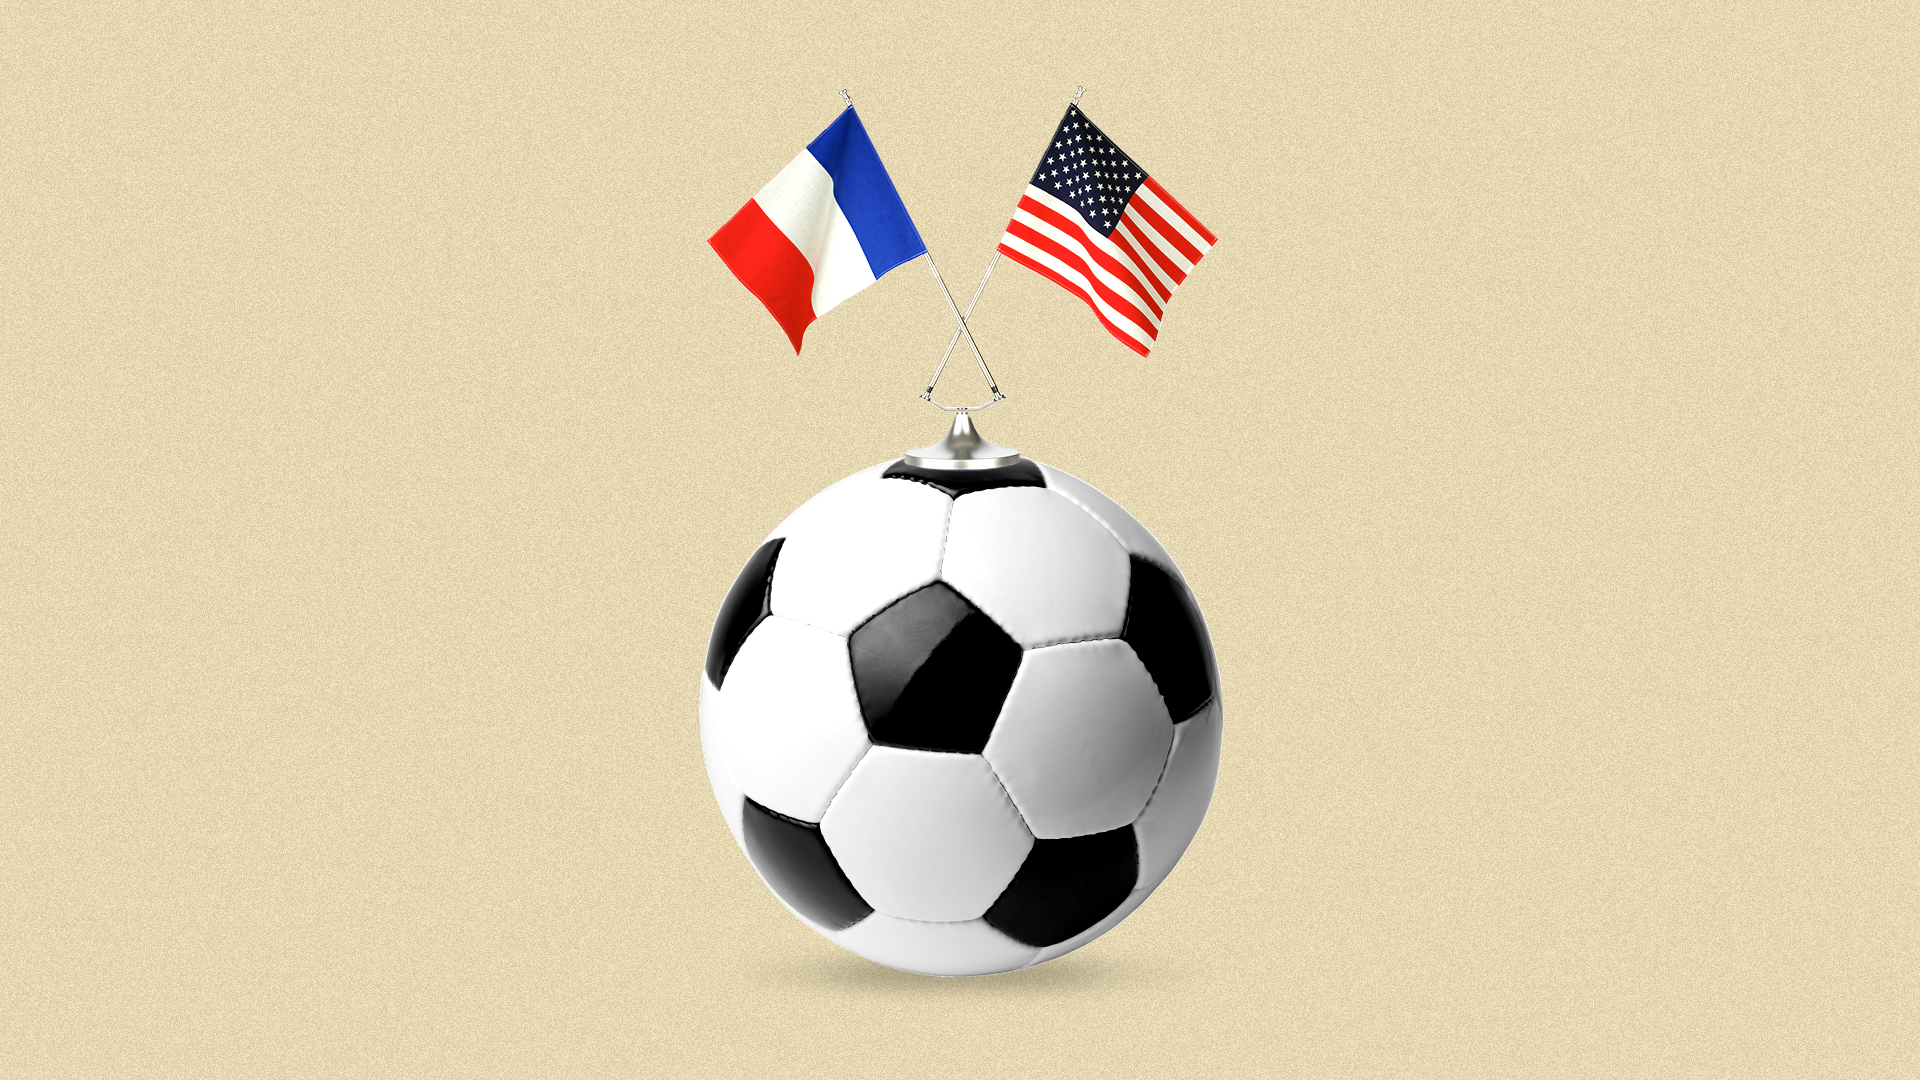 Illustration of a soccer ball with the American and French flags on top